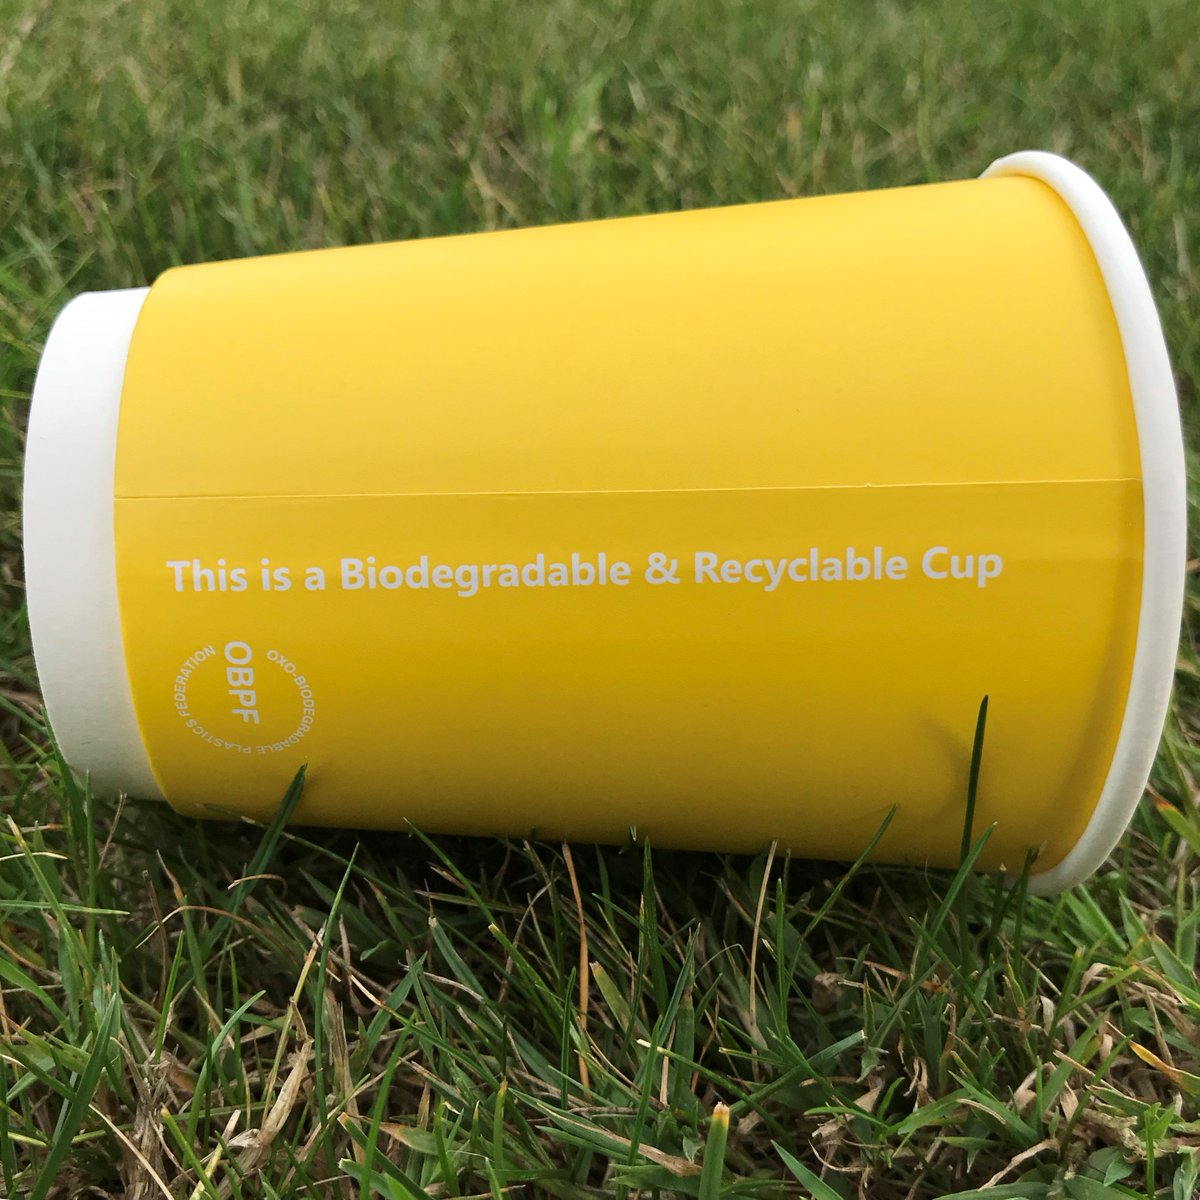 Did you know our new take away cups are biodegradable & can go in the compost bin? While the lids can go in recycling bin once they have been washed ♻️ This is part of Tifco Hotel Group's (@tifcohotels) commitment to cutting back on single use plastic #EcoTifco #uselessplastic https://t.co/3F4Sg7mhFf